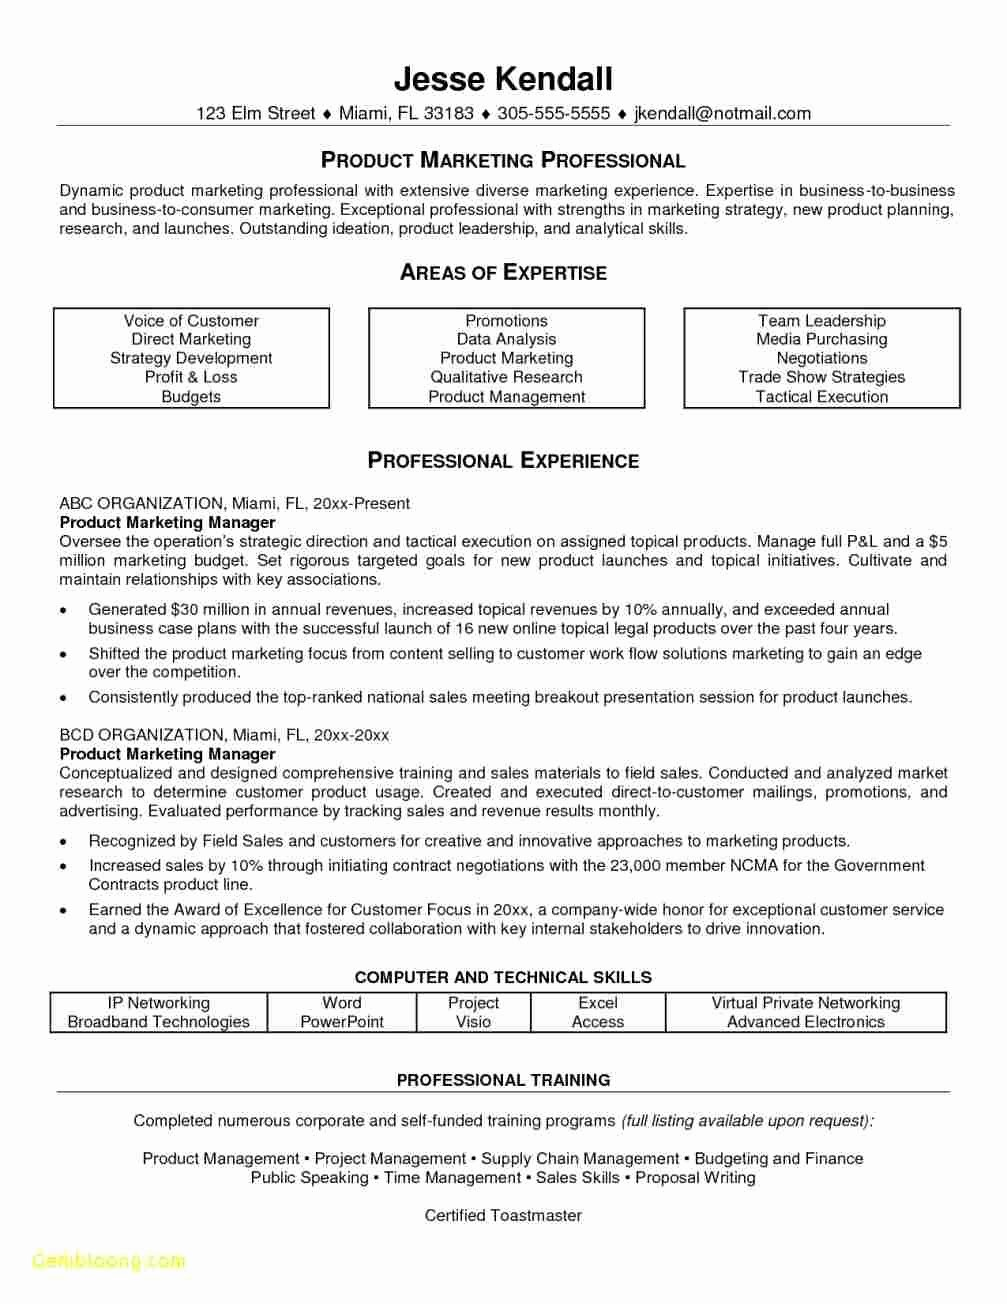 Marketing Director Cover Letter Beautiful 4e1e9 Marketing Director Cover Letter 4e1e9 – Cover